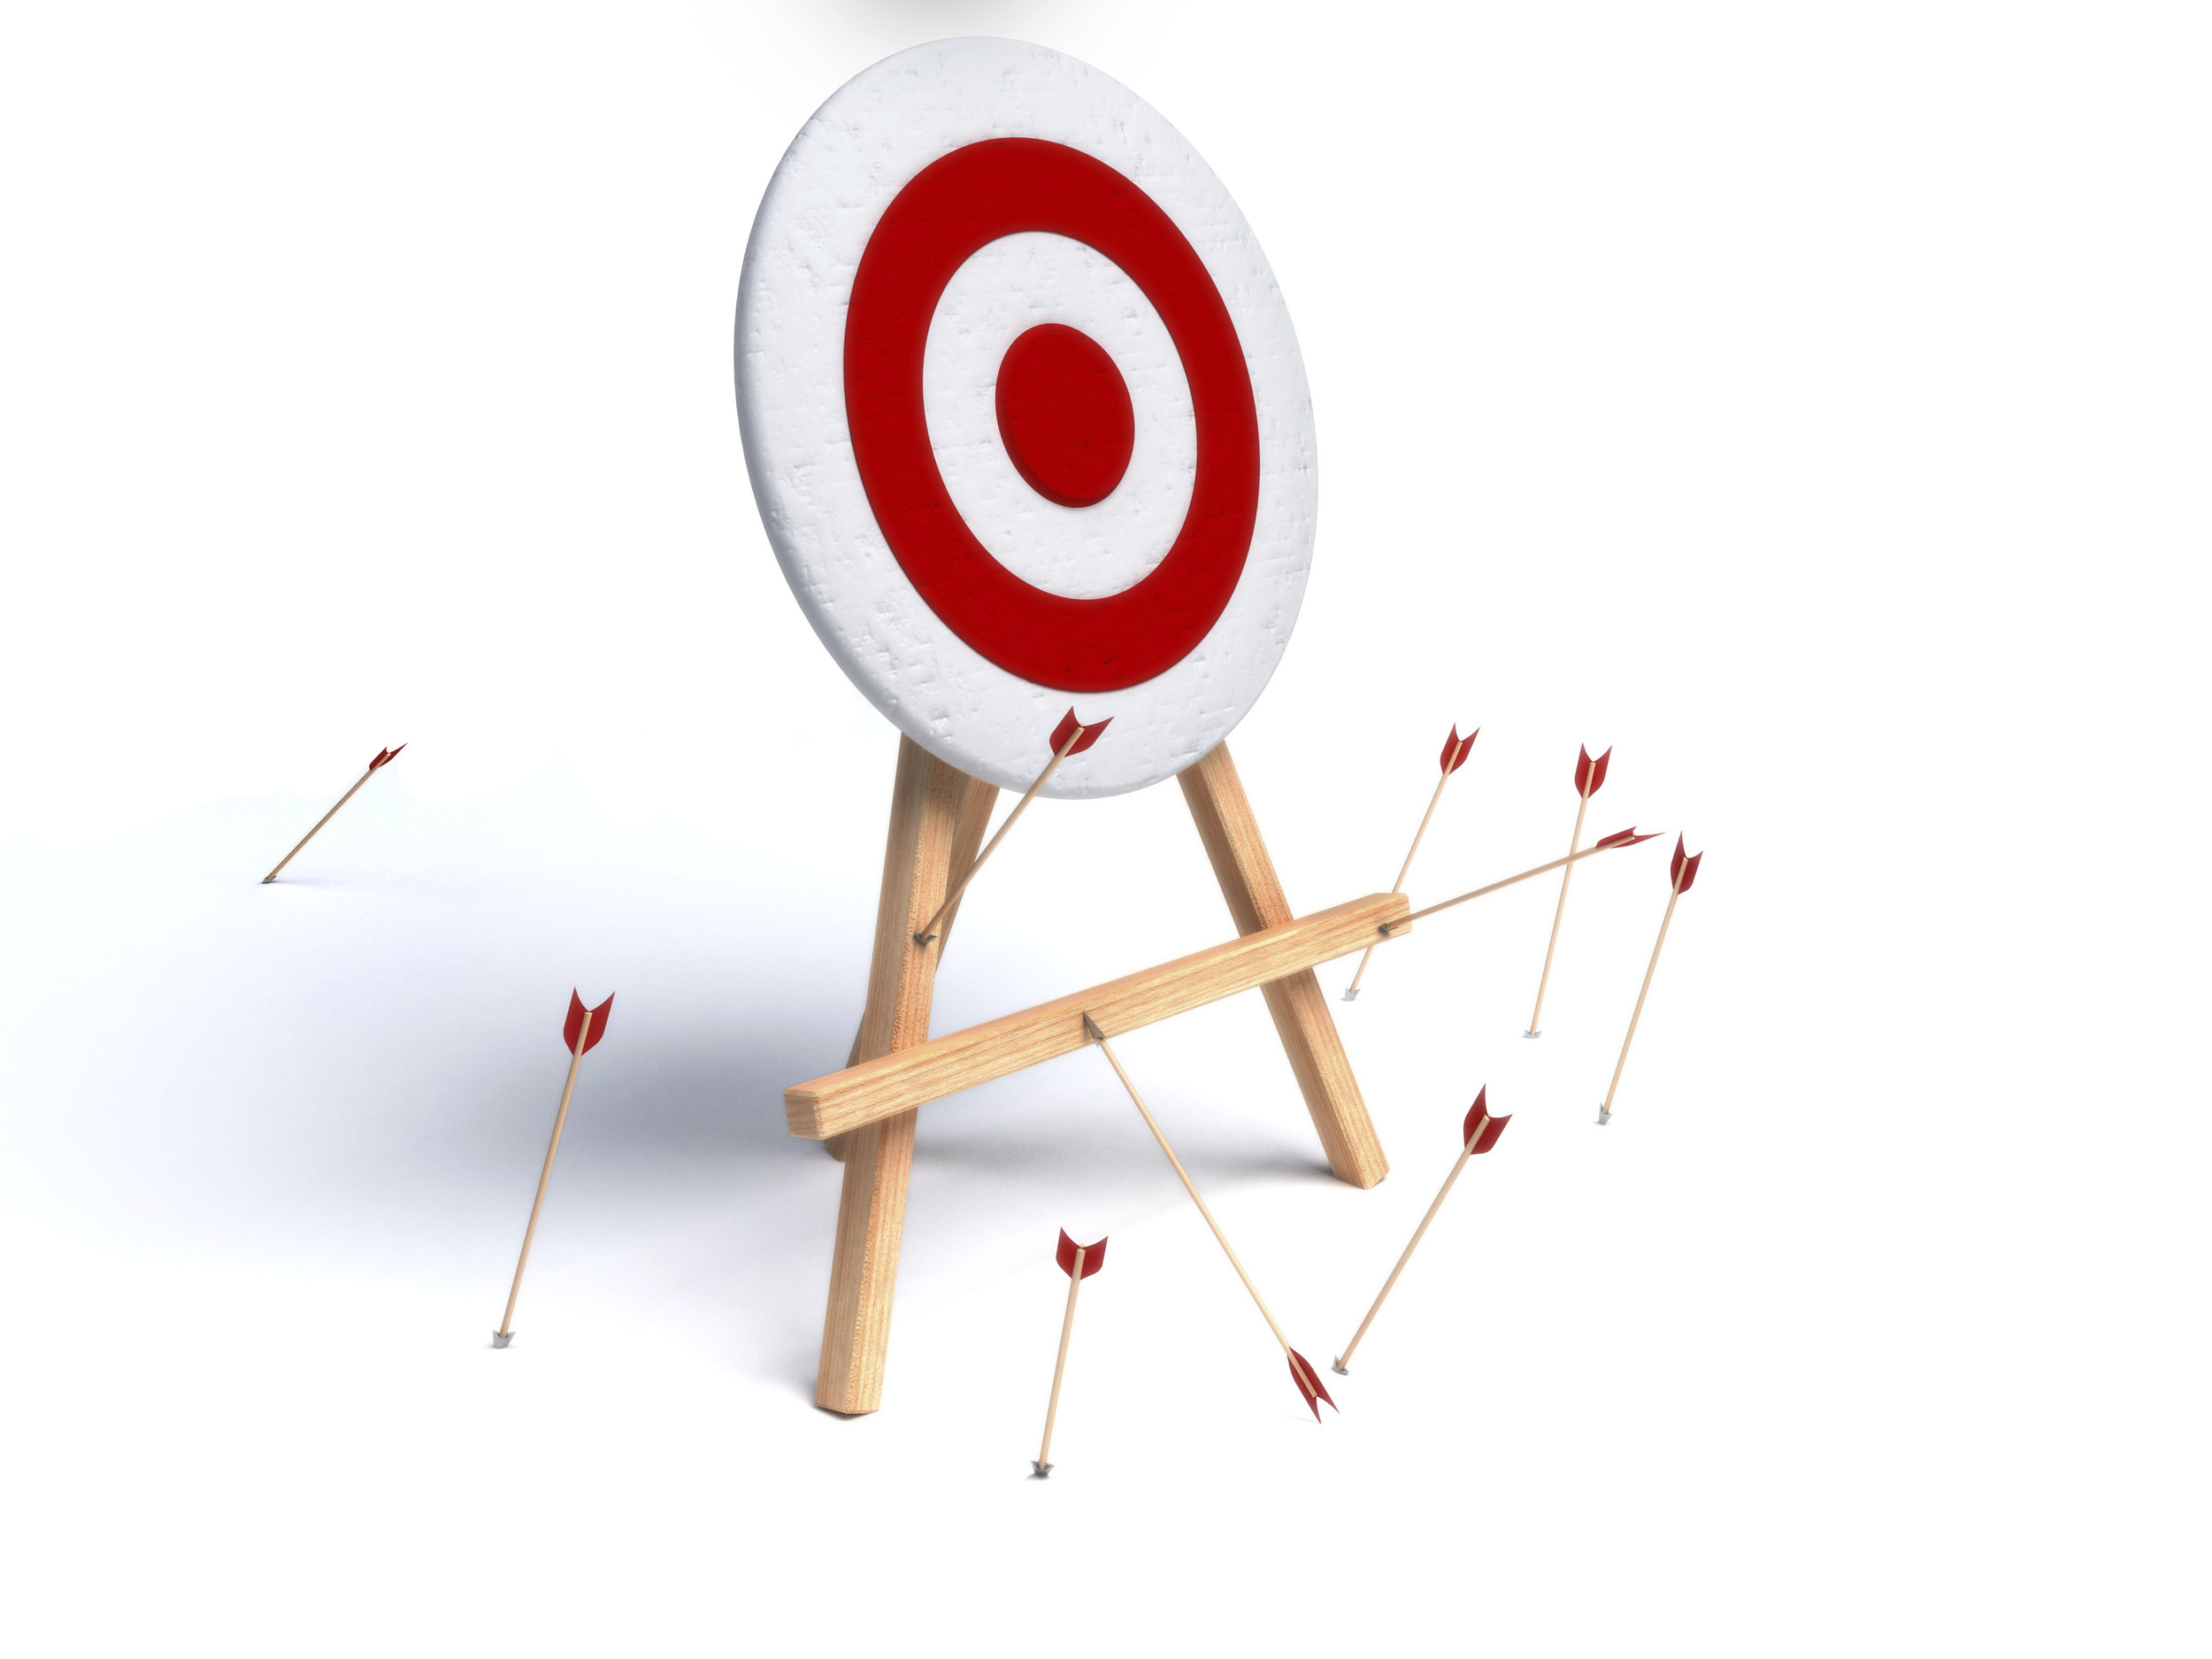 white target with arrows missing the target, symbolizing failure or falling short of the mark